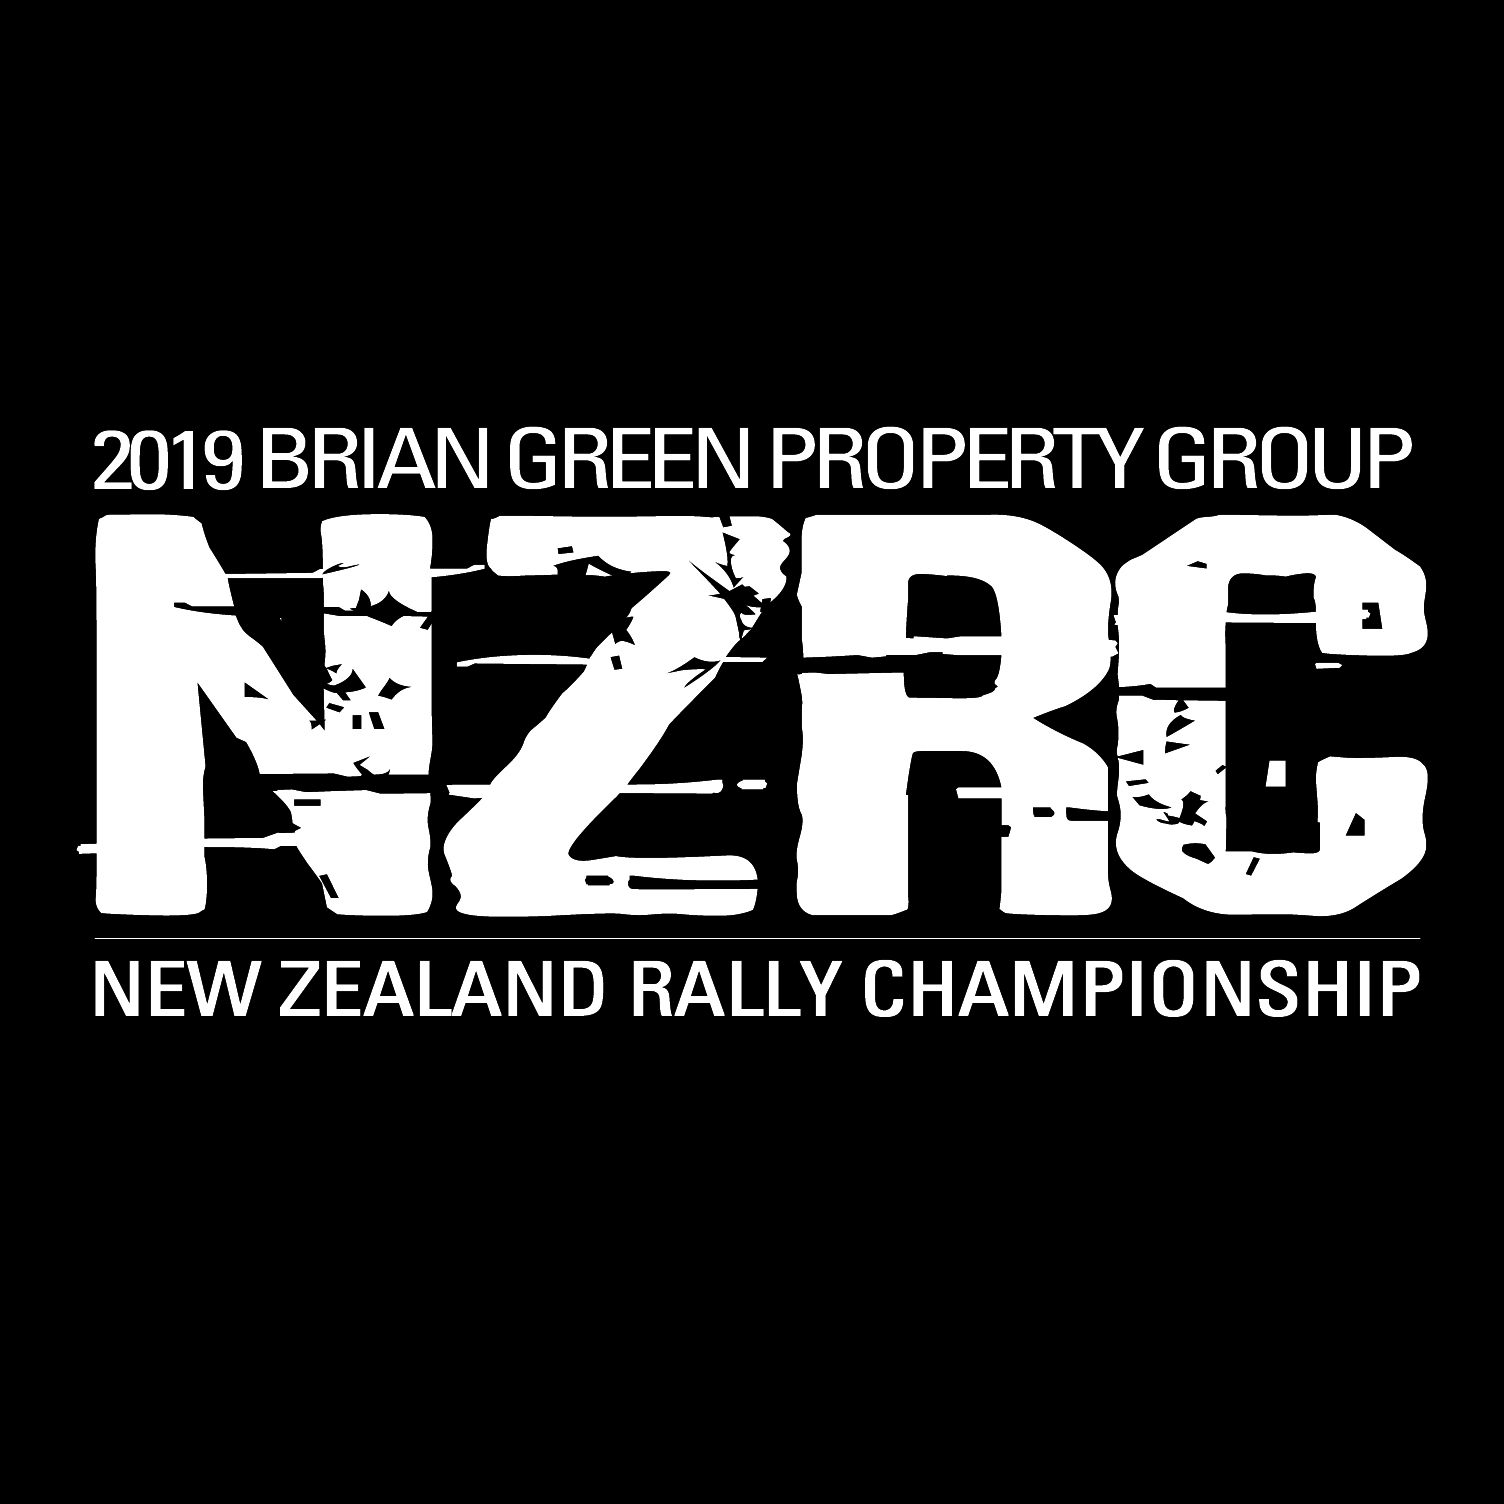 Podium for Gilmour at Wairarapa | :: Brian Green Property Group New Zealand Rally Championship ::